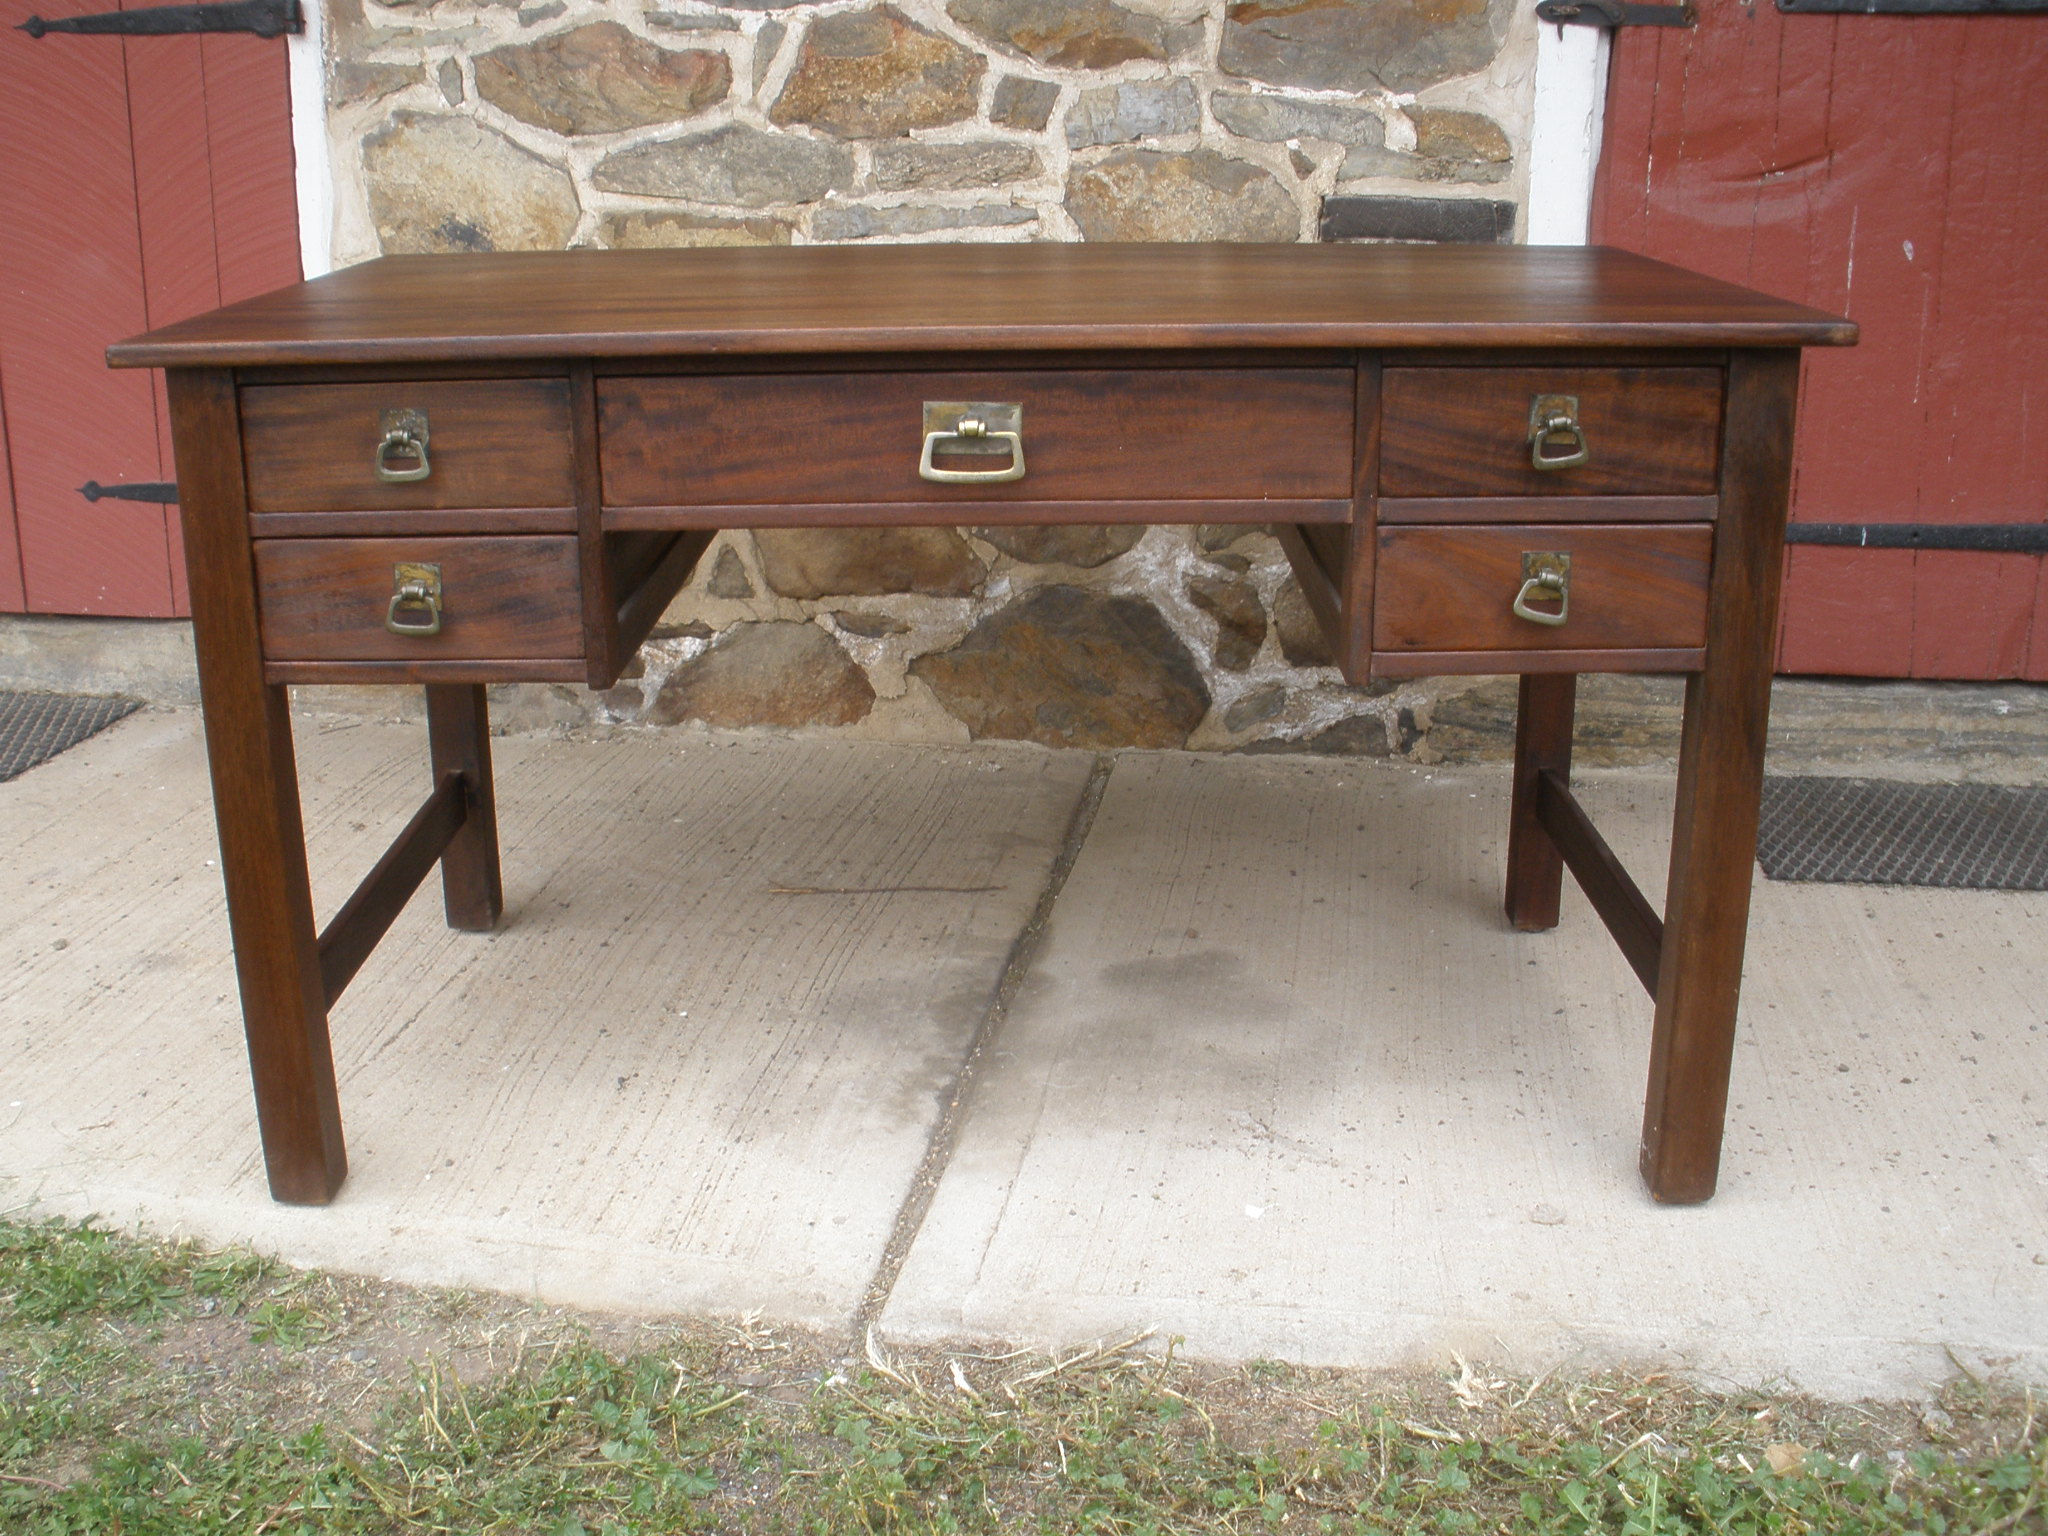 an repair antique and haif help houston construction home identify old topic desk me